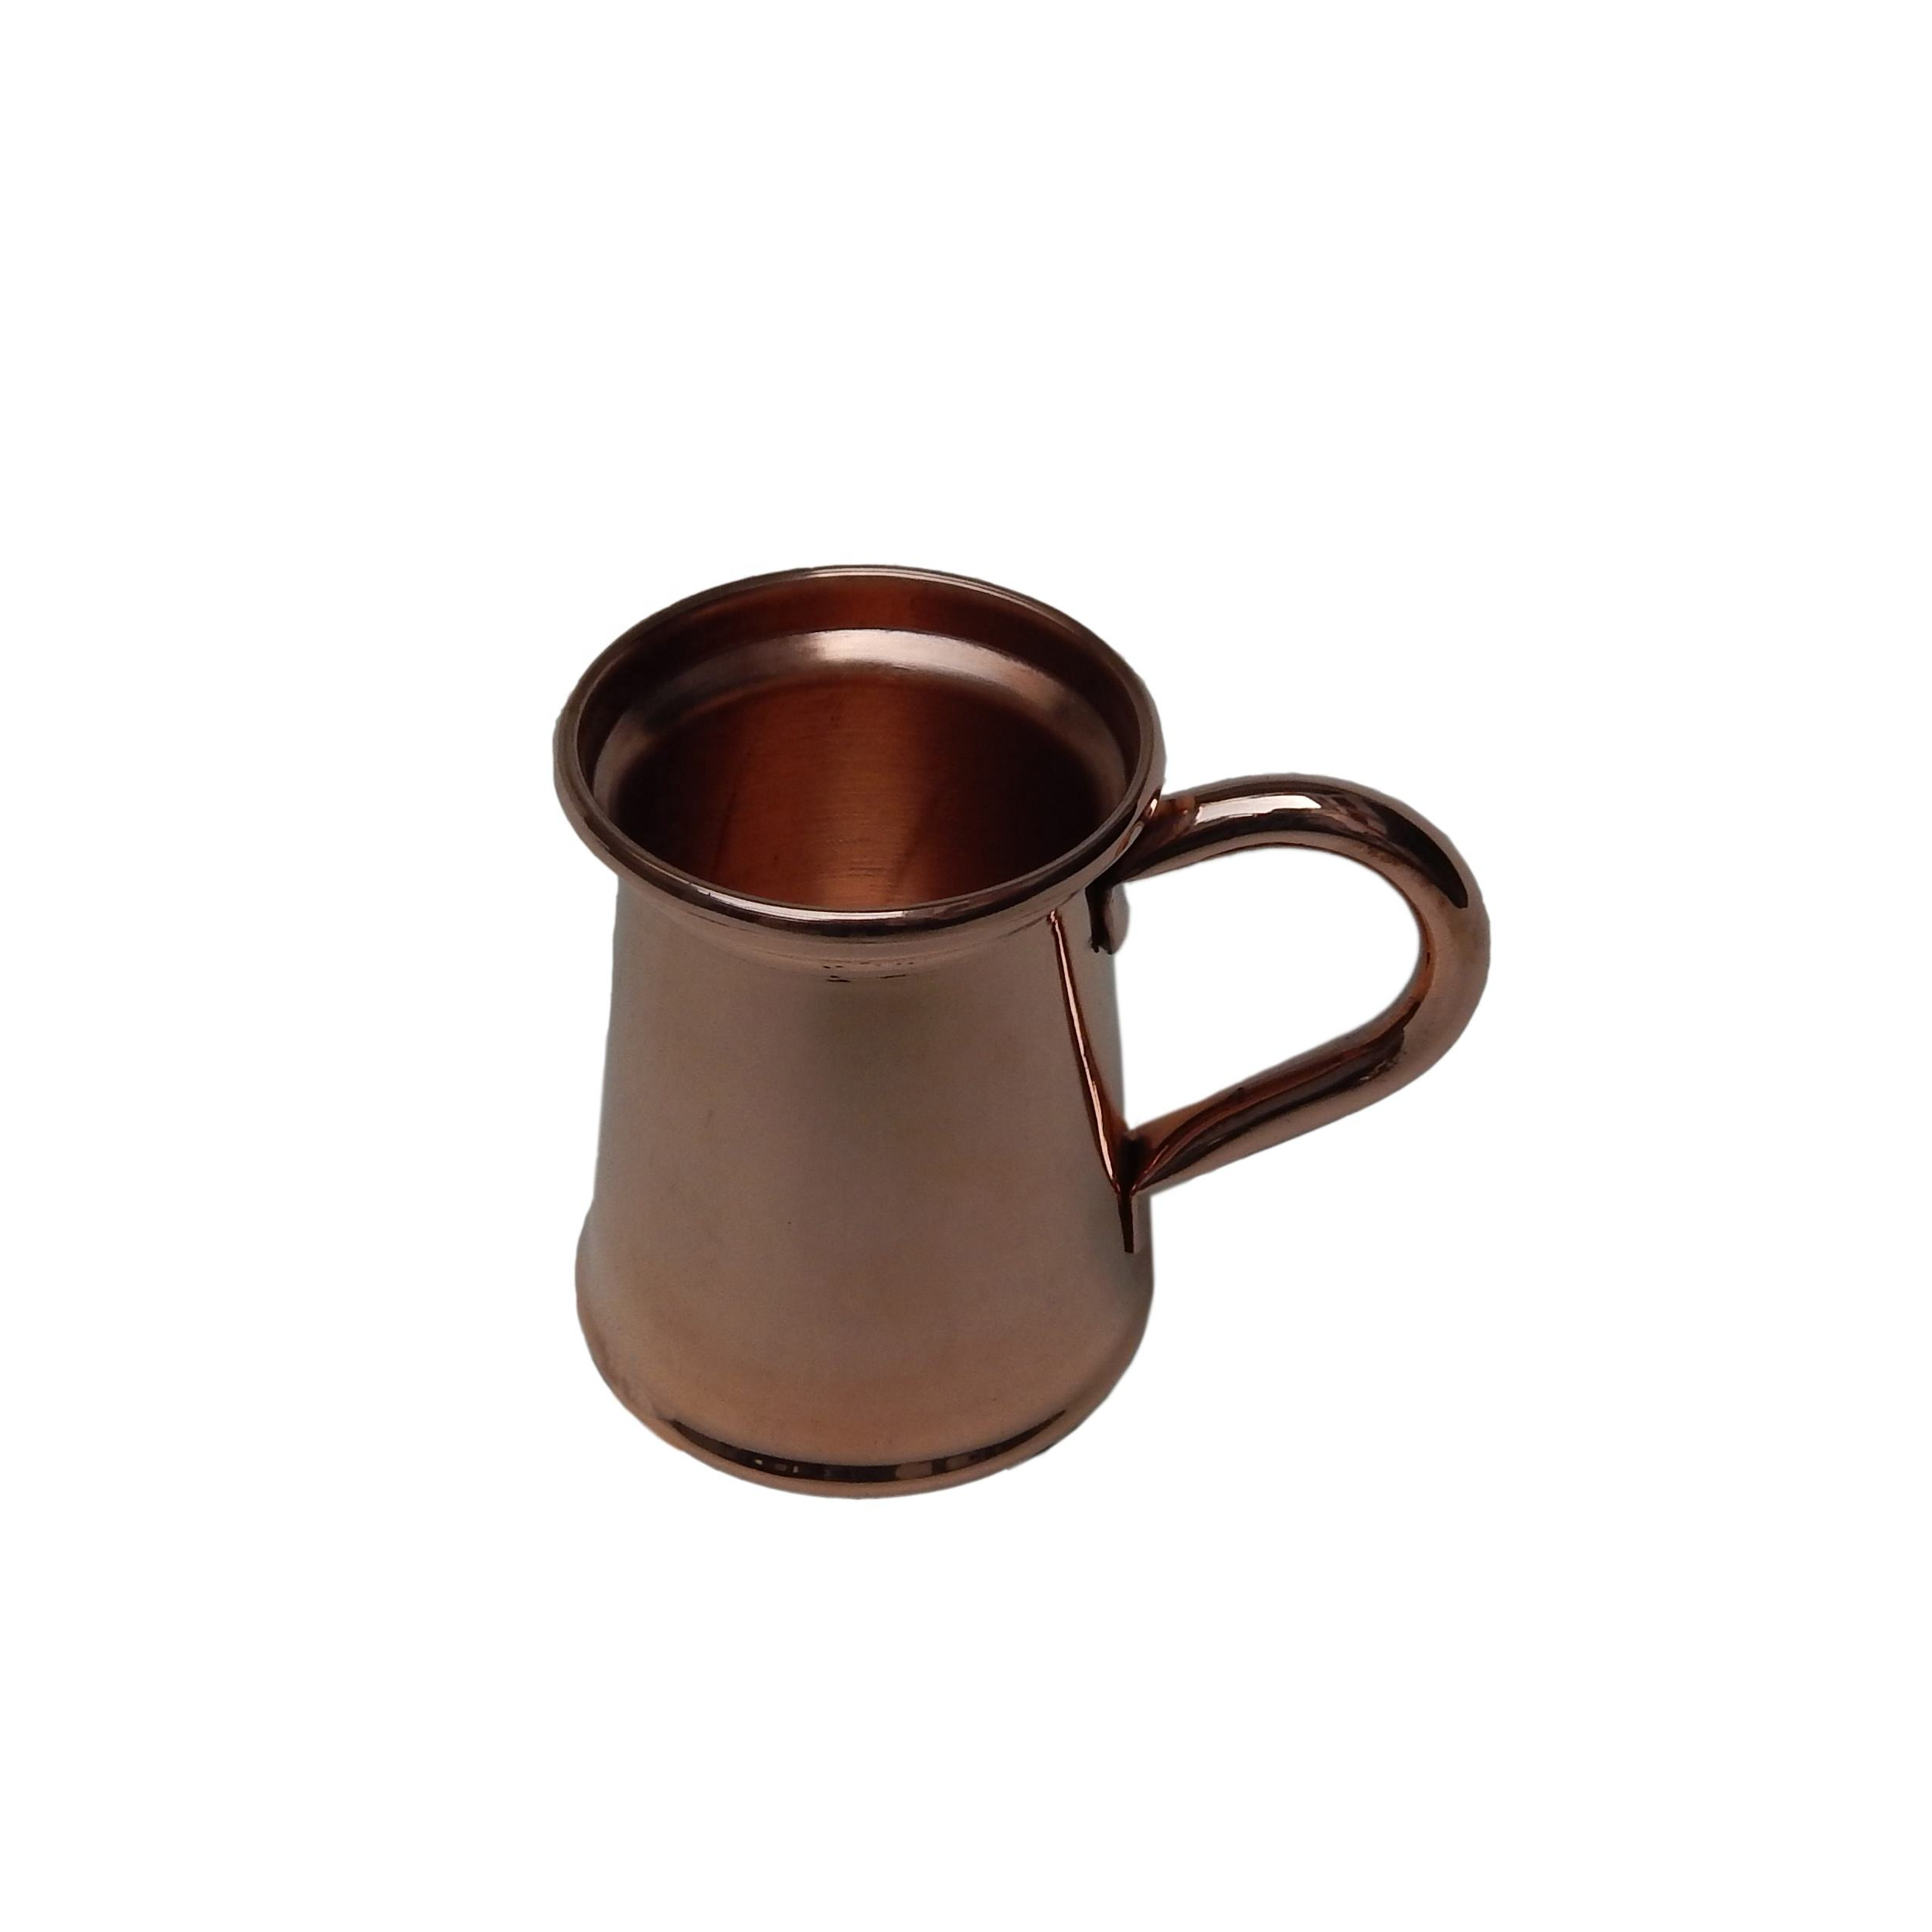 Neuankömmling Pure Copper Cup Moskauer Maultier Bier trinken Cocktail Camping Cup <span class=keywords><strong>Kupfer</strong></span> Drink Bar Bier <span class=keywords><strong>becher</strong></span>